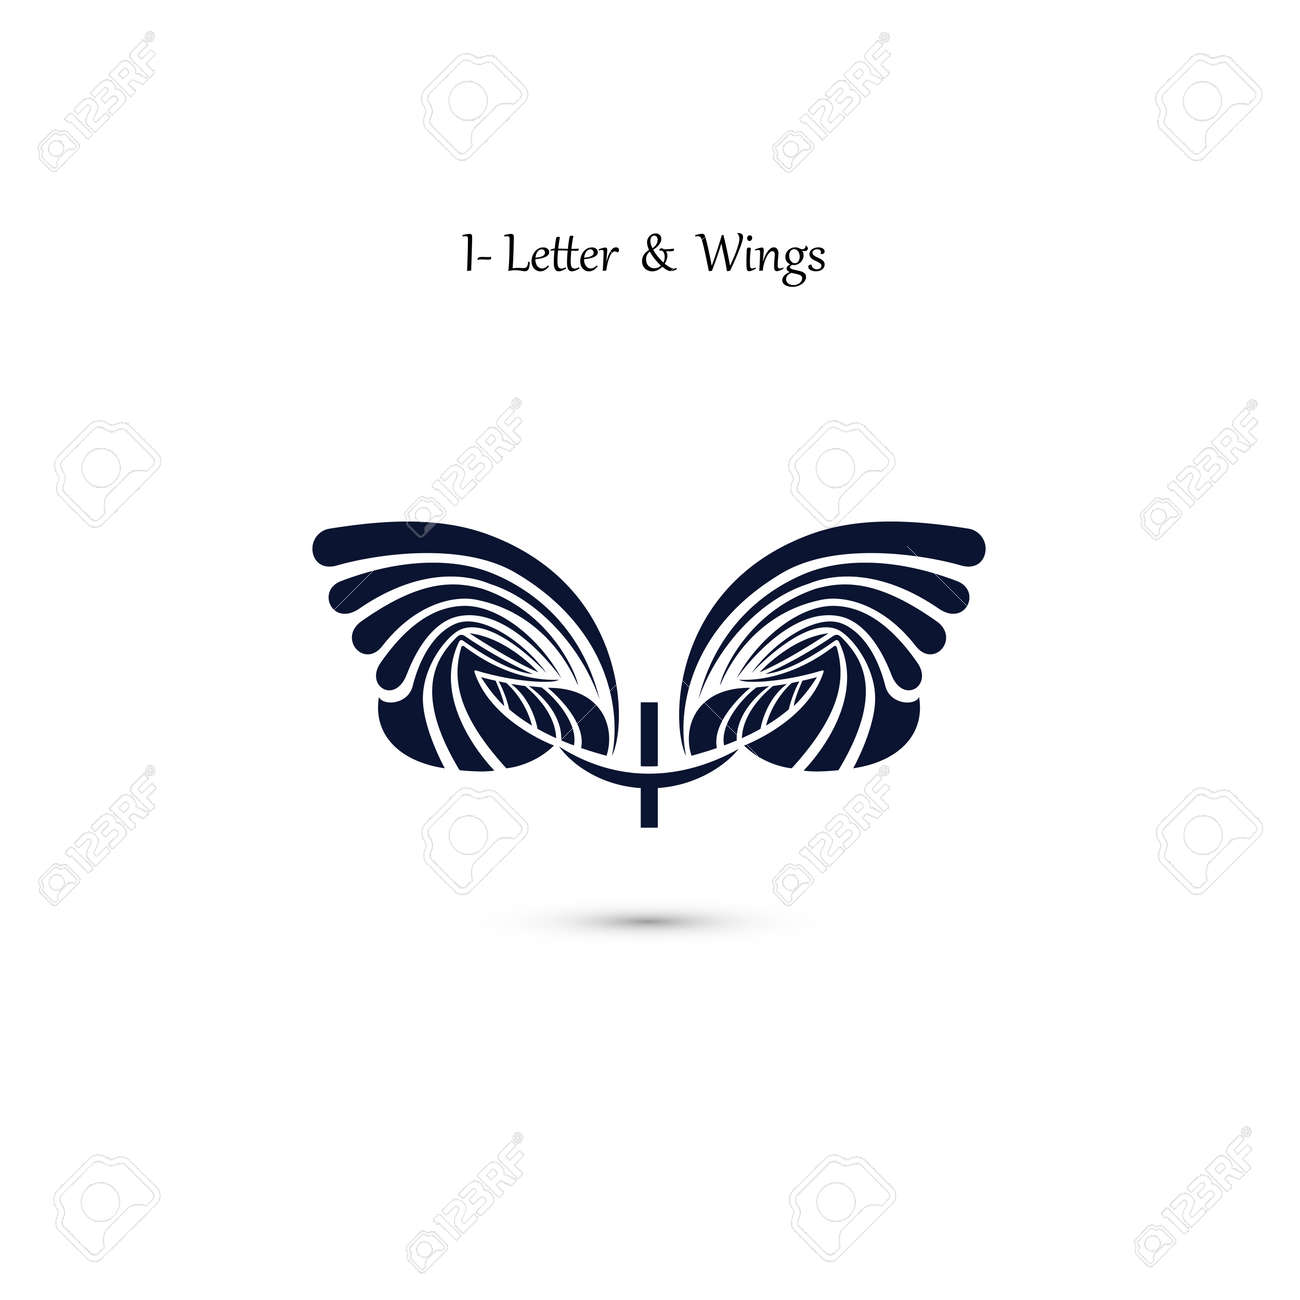 i letter sign and angel wingsmonogram wing vector logo templateclassic emblem